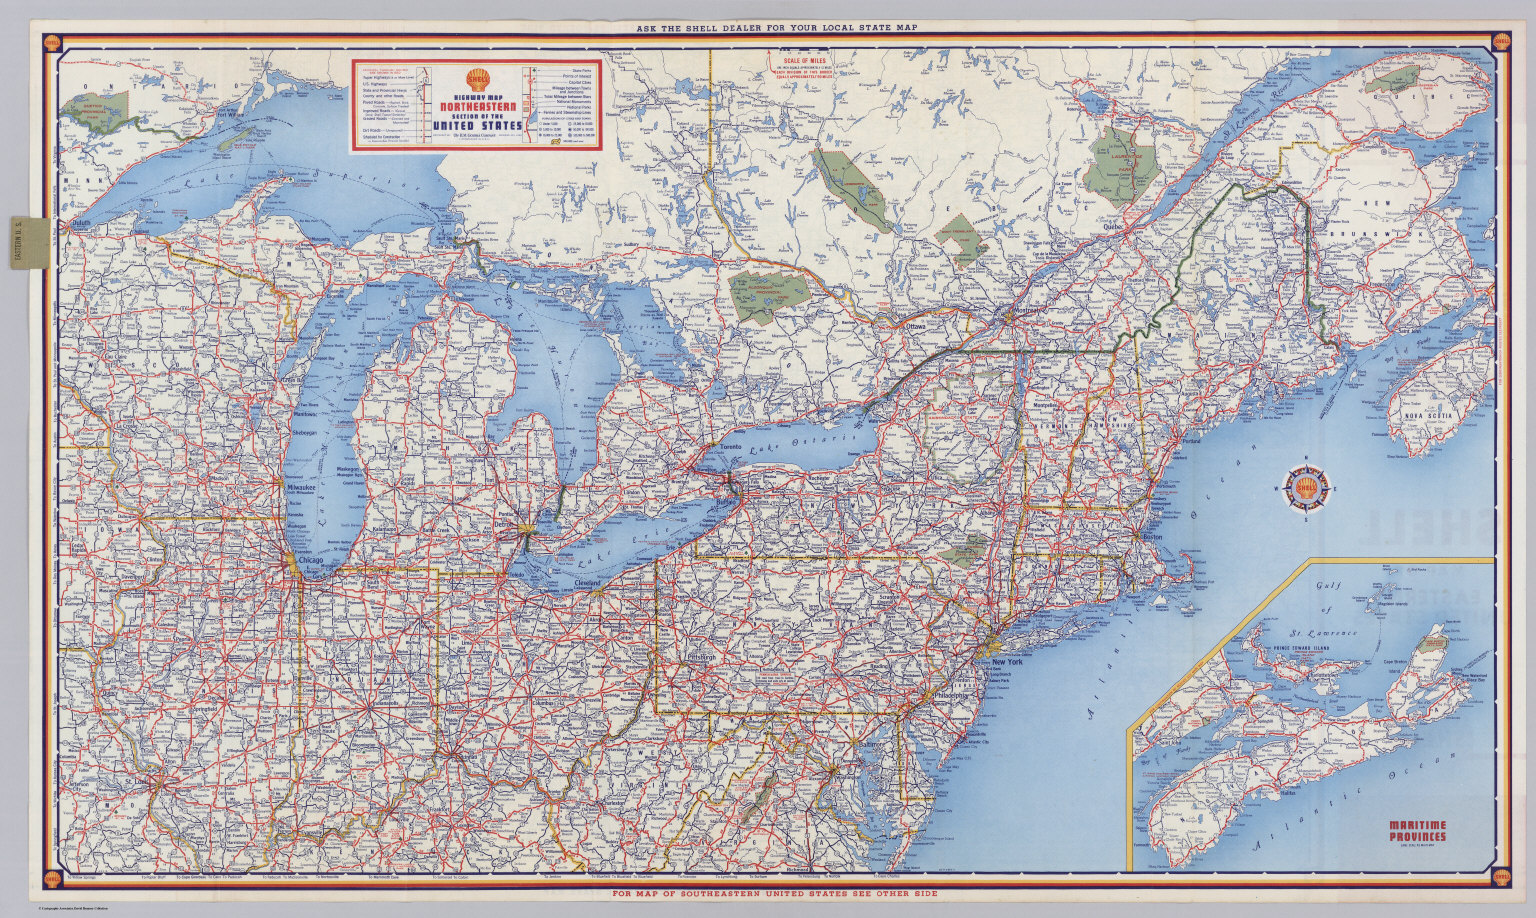 Shell Highway Map Northeastern Section Of The United States - Map of usa and canada east coast